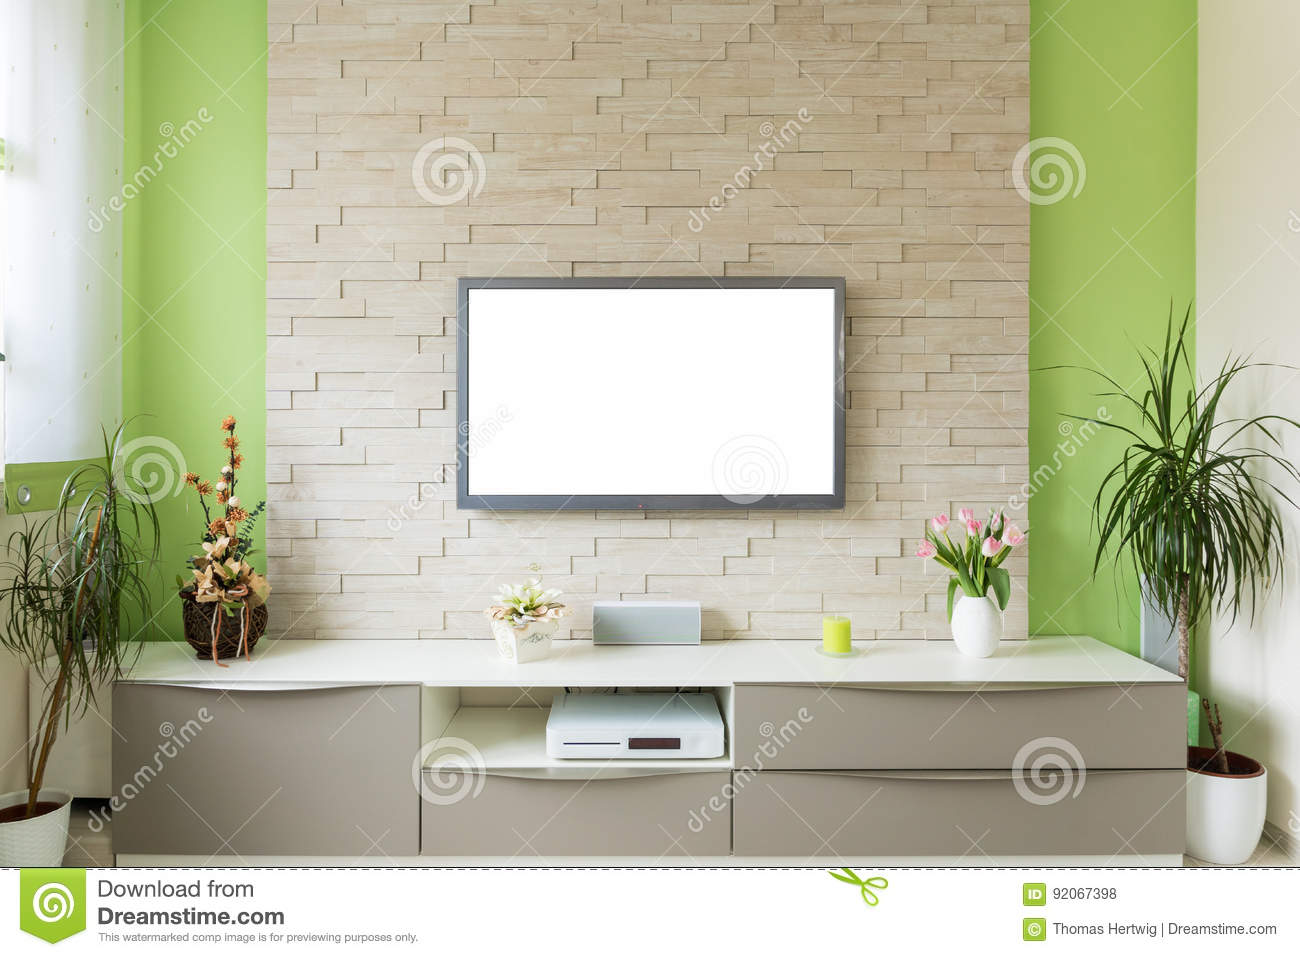 Modern Living Room Interior - Tv Mounted On Brick Wall With White ...